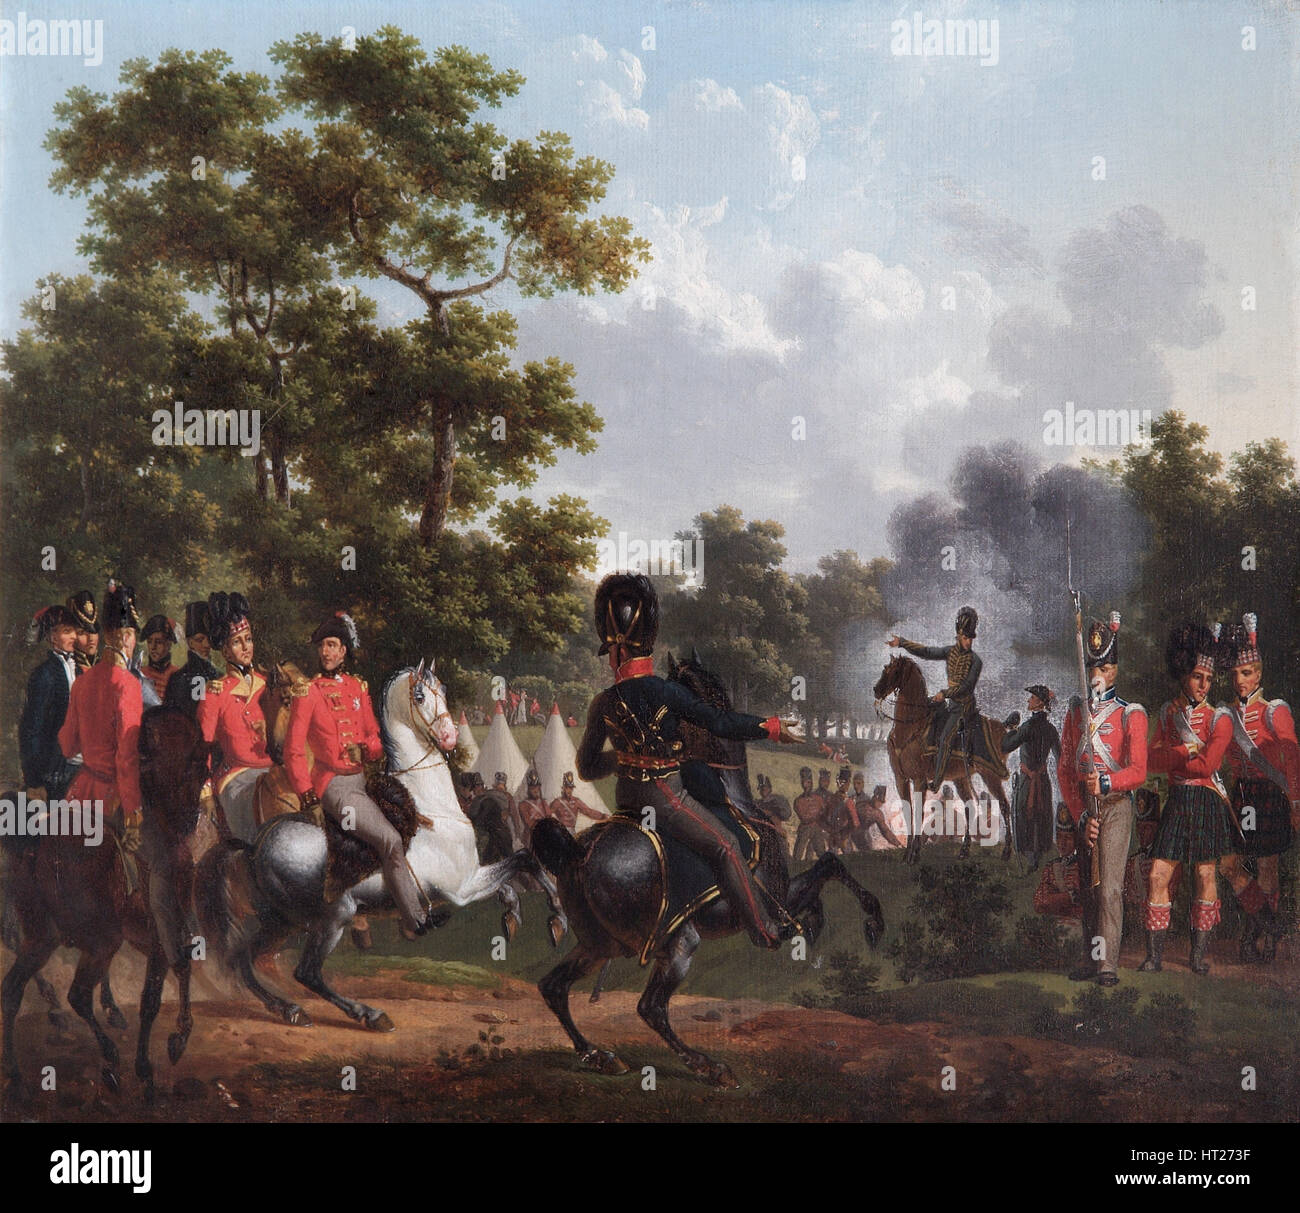 'The Duke of Wellington Visiting the Outposts at Soignes', 1815. Artist: Hippolyte Lecomte. - Stock Image